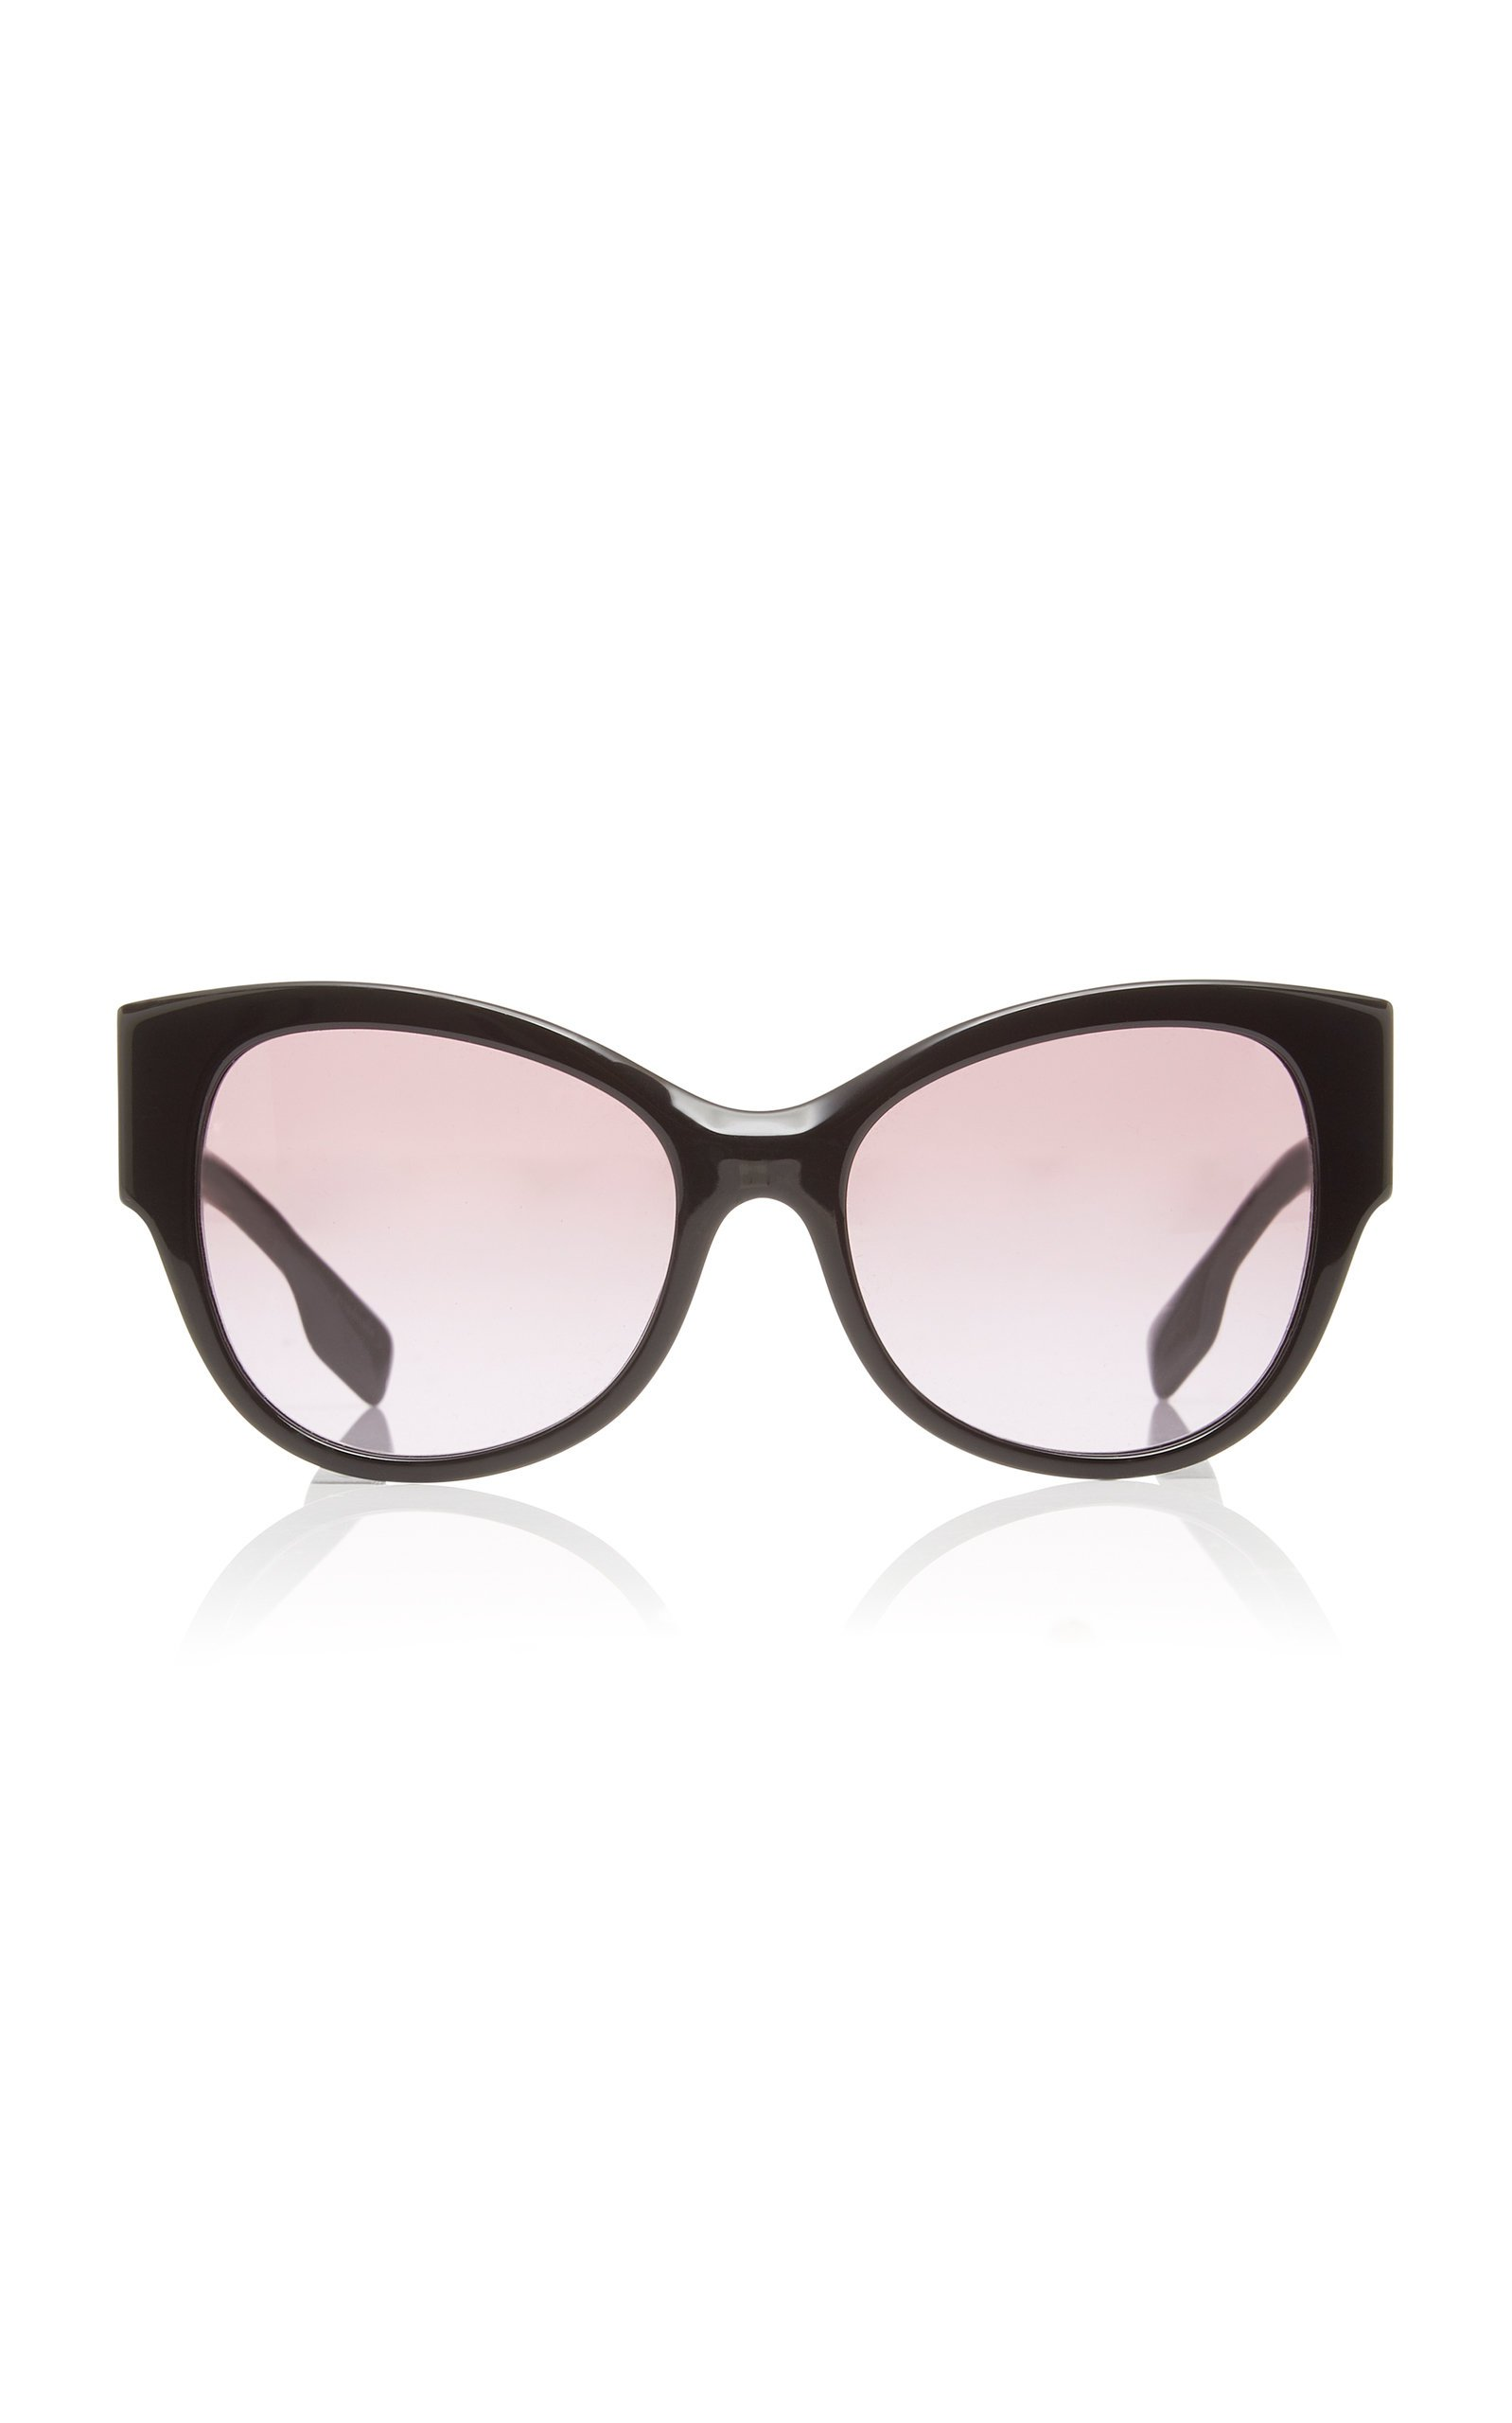 Burberry Oversized Acetate Round-Frame Sunglasses